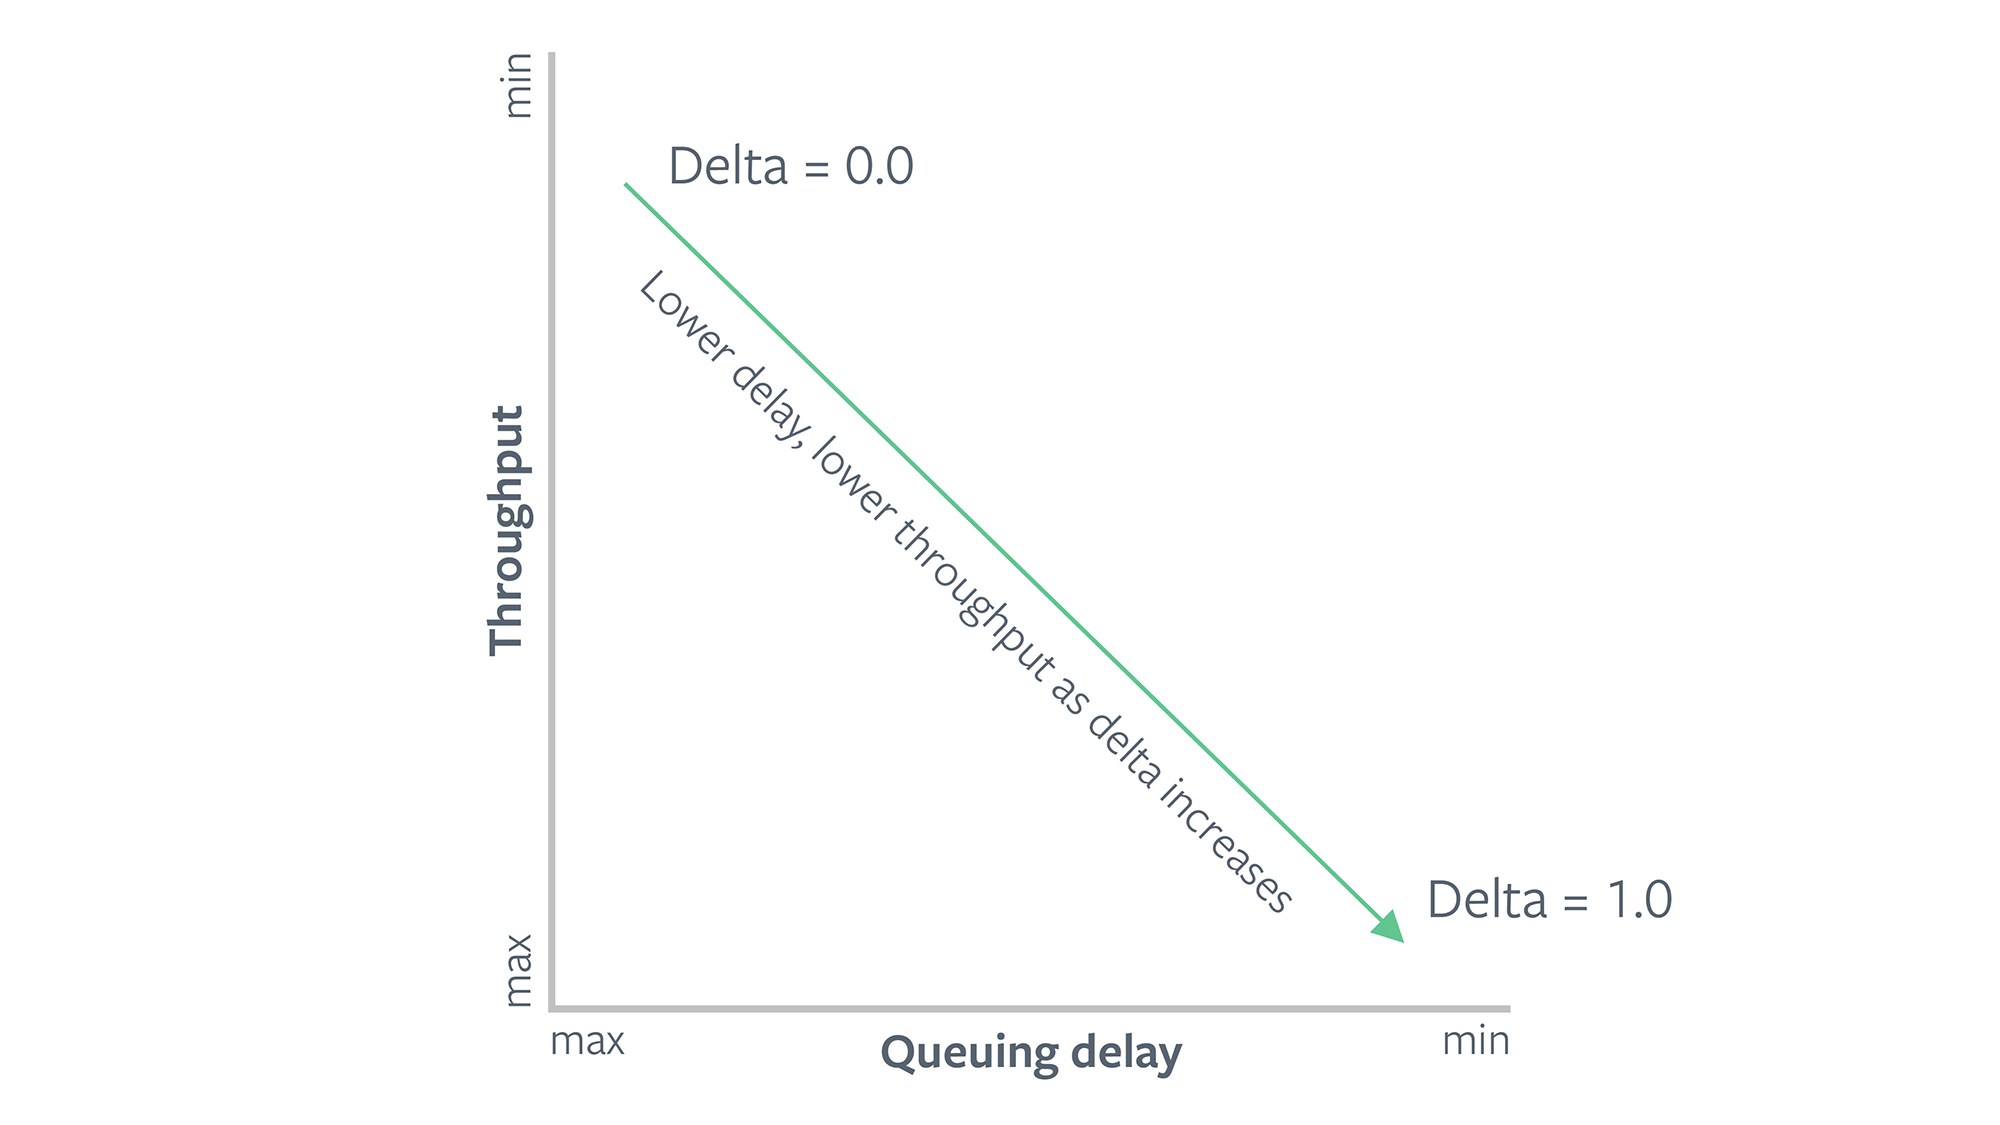 A higher value of delta makes COPA more sensitive to delays and provides lower throughput. A lower value of delta will provide more goodput at the cost of incurring more delays.